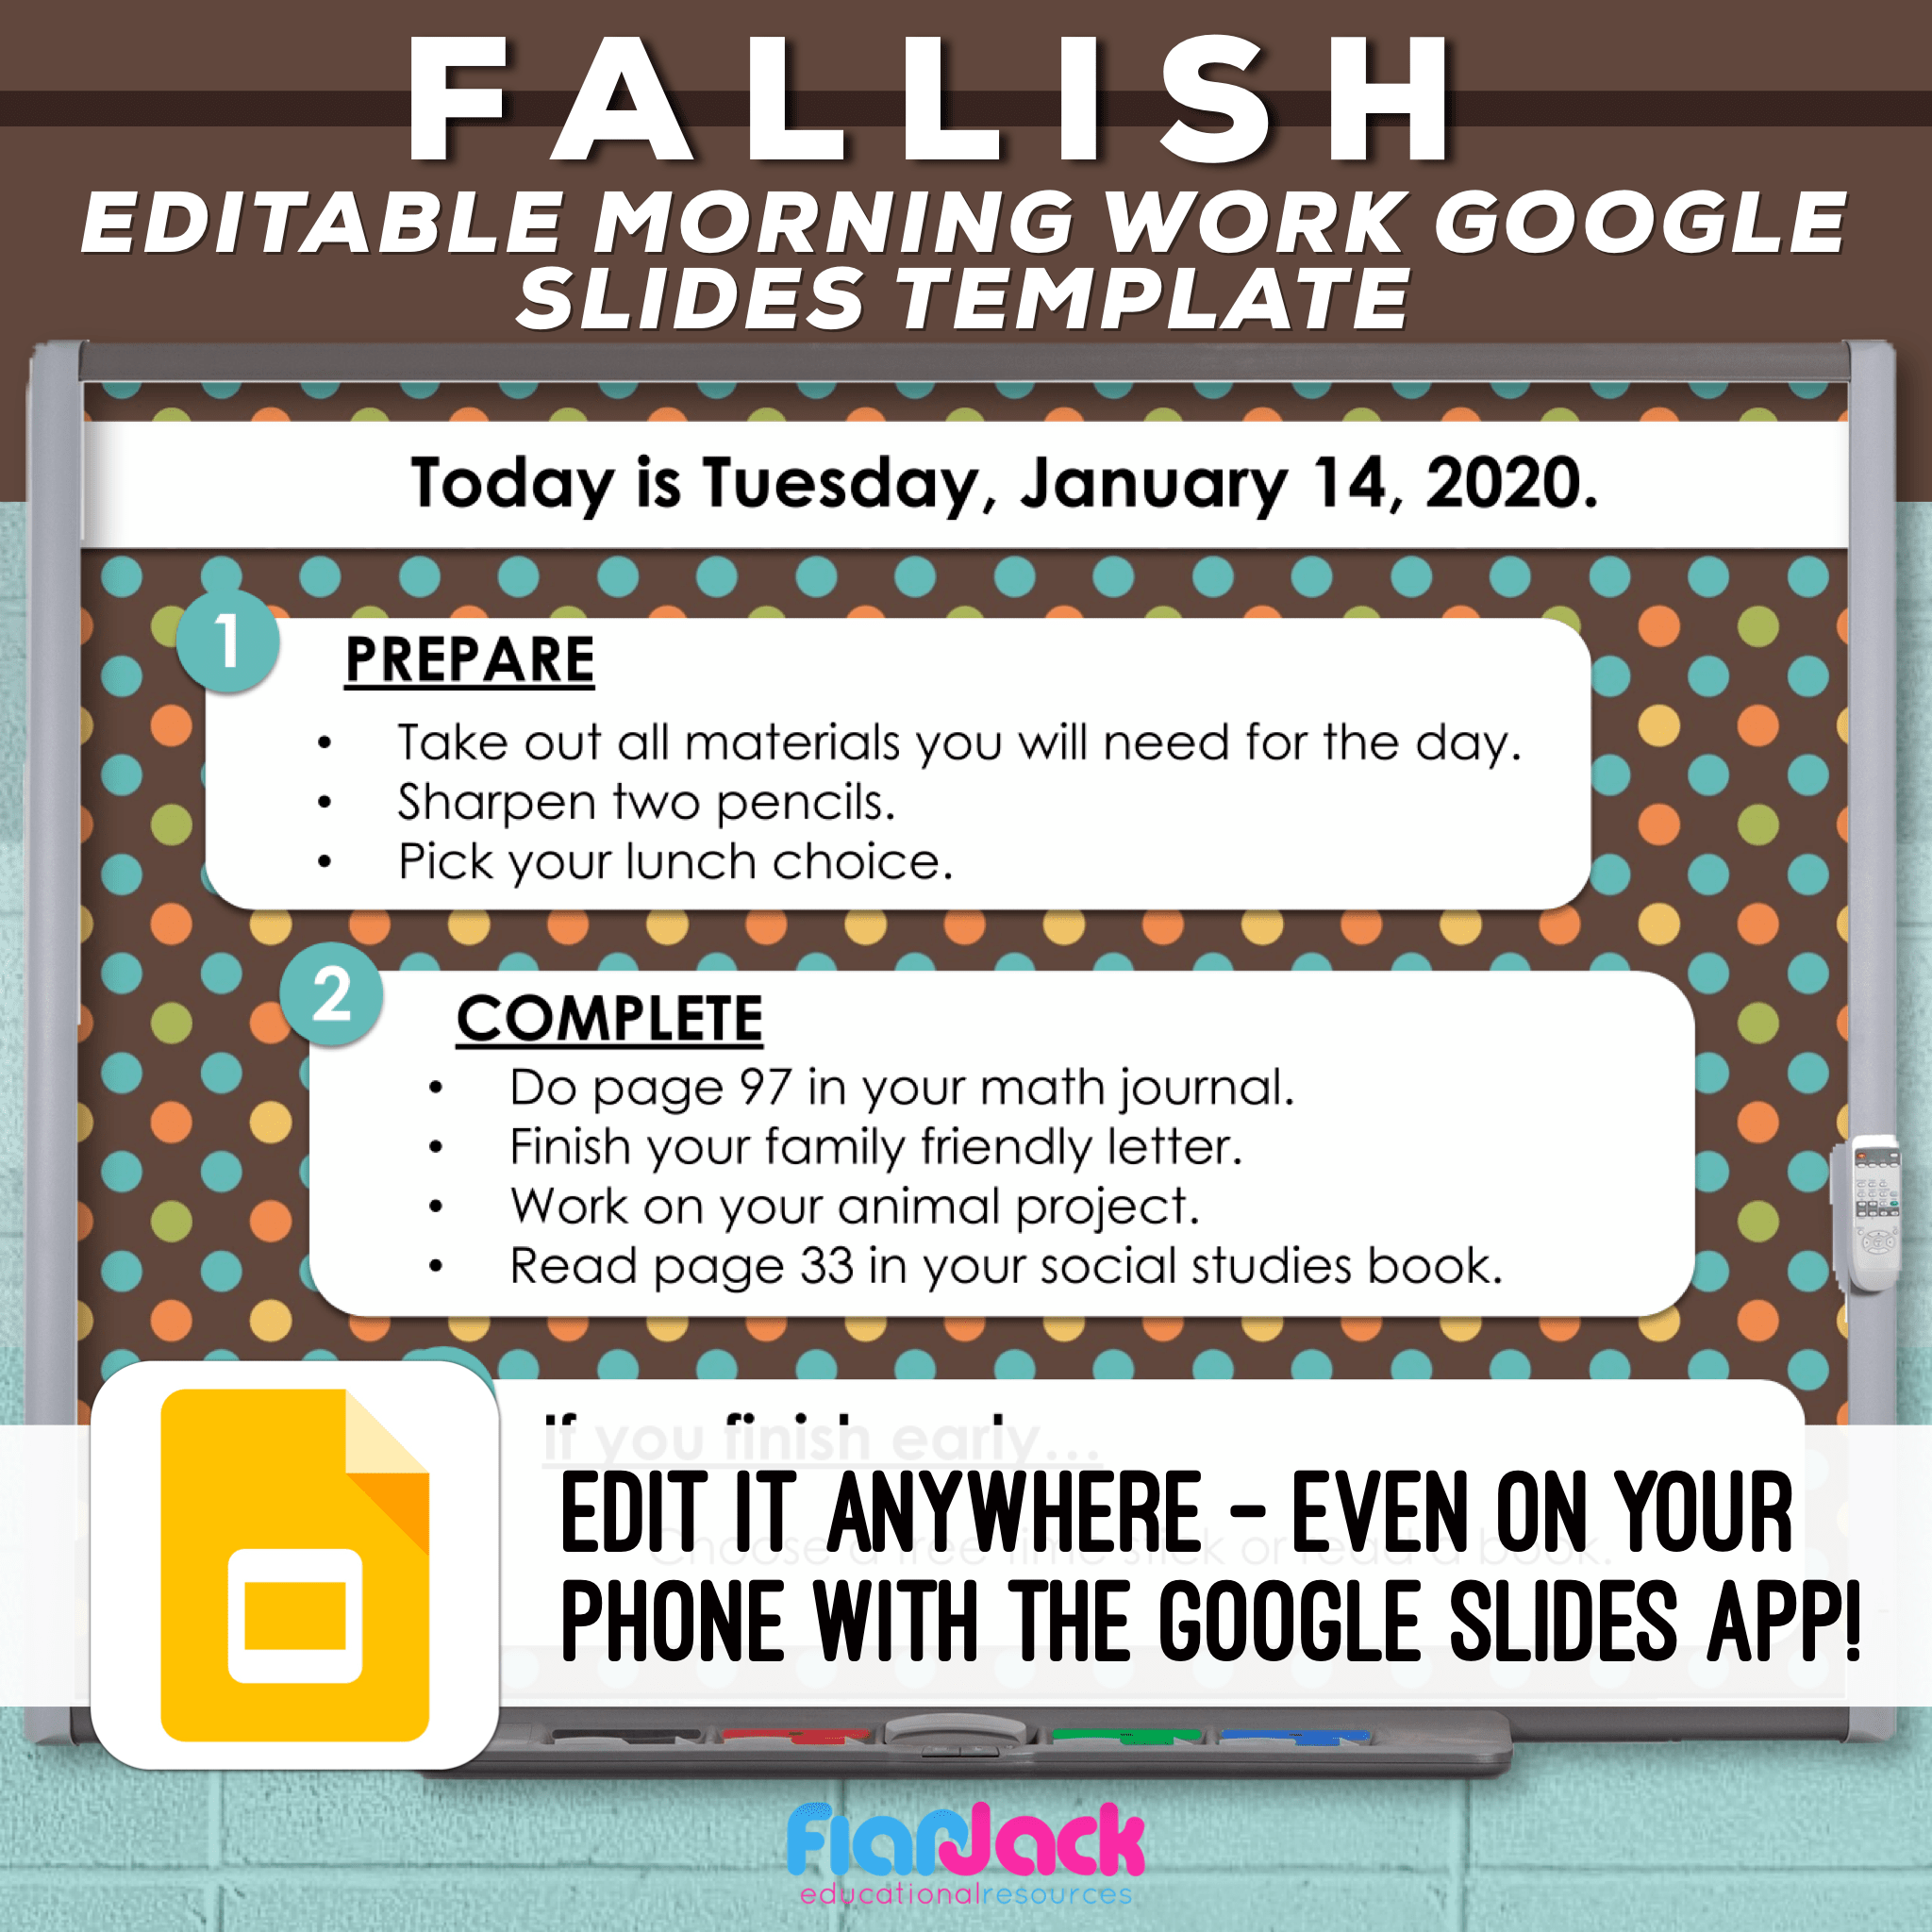 Editable Google Slide Templates | Fallish